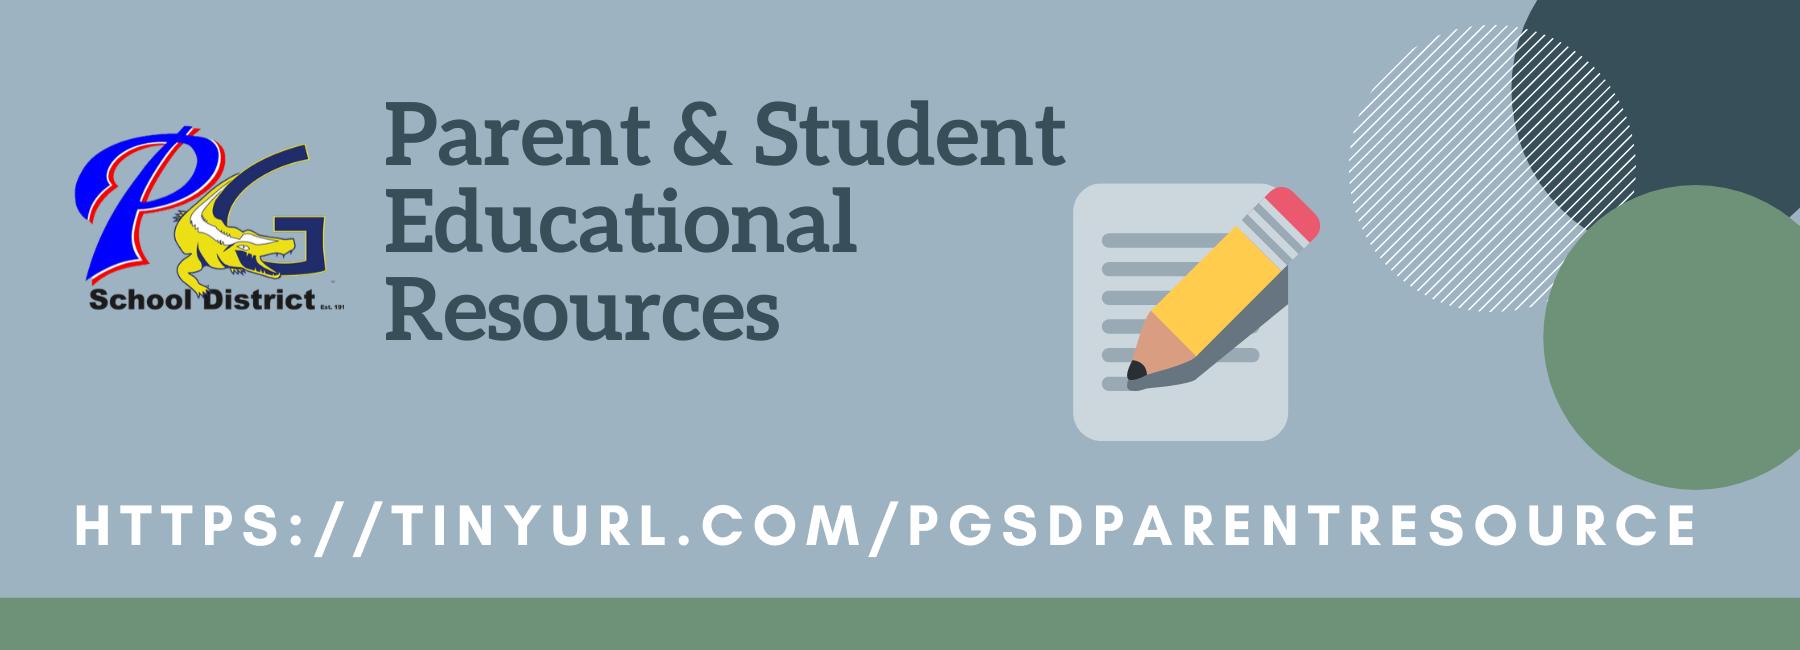 Parent Educational Resources